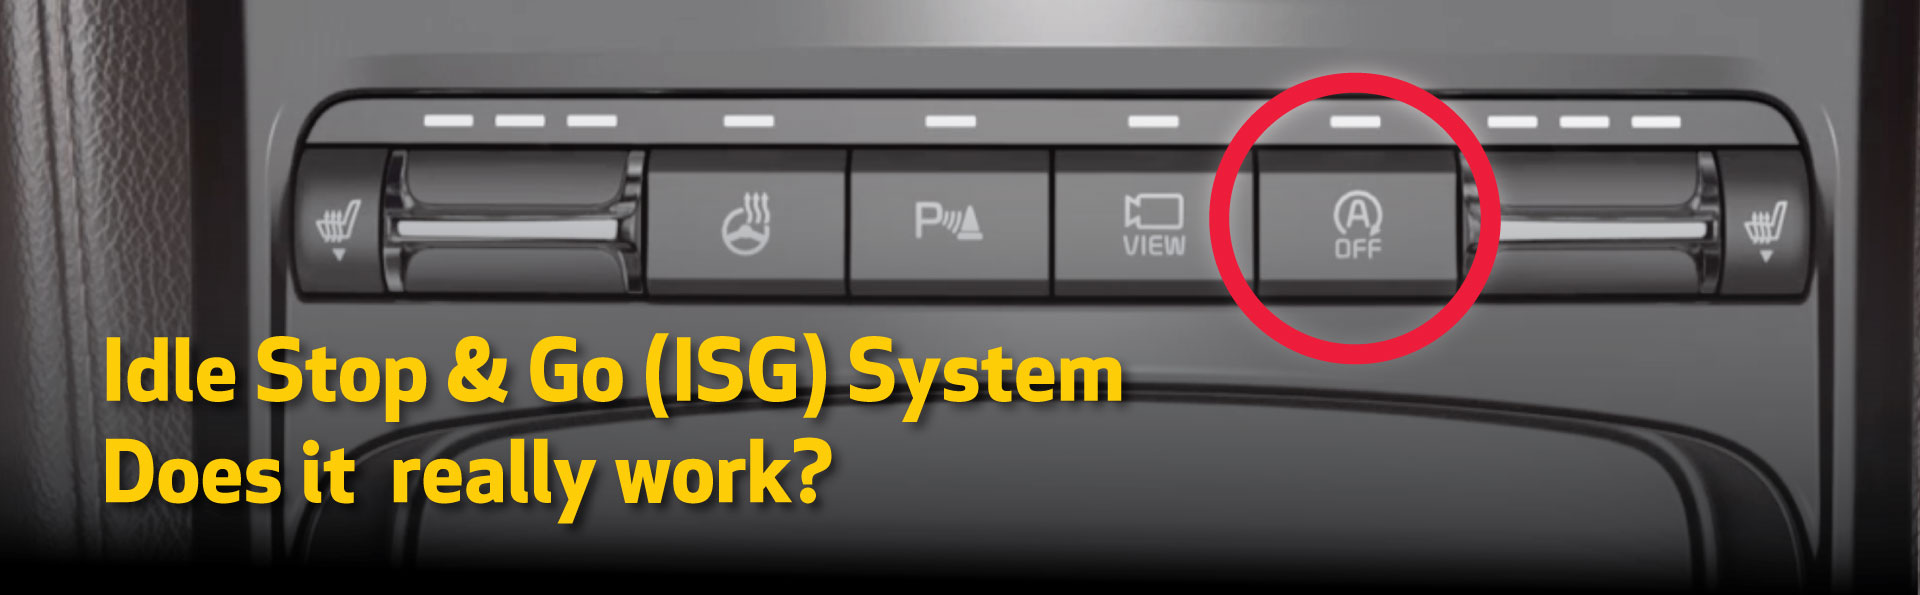 Does The Idle Stop & Go (ISG) System Really Work? - Kia of